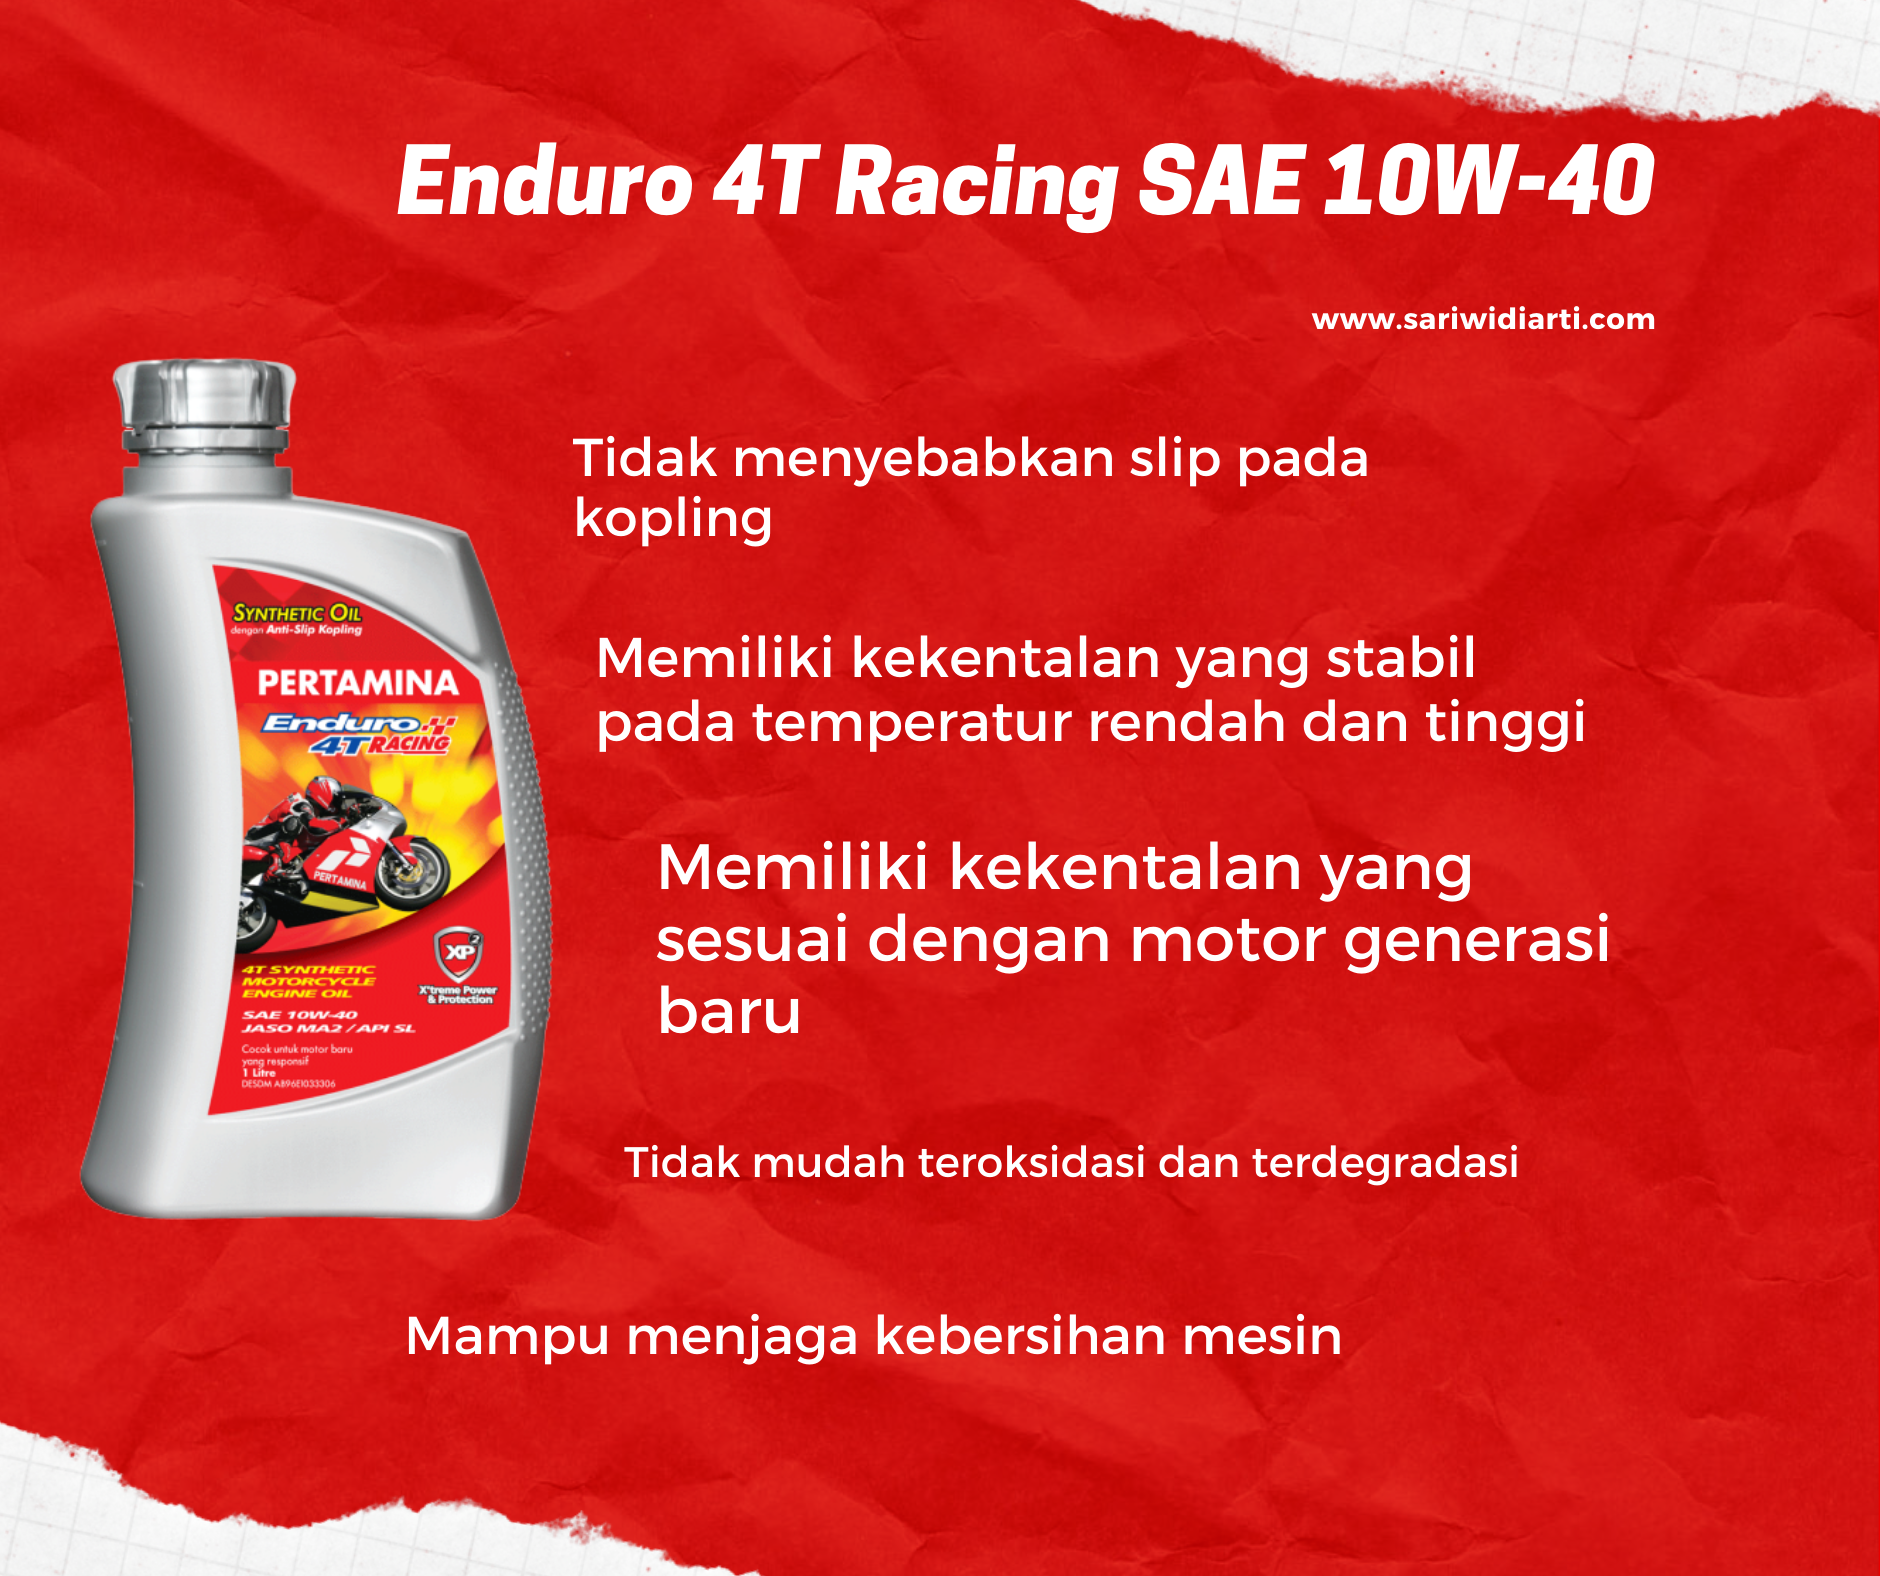 Enduro 4T Racing SAE 10W-40.